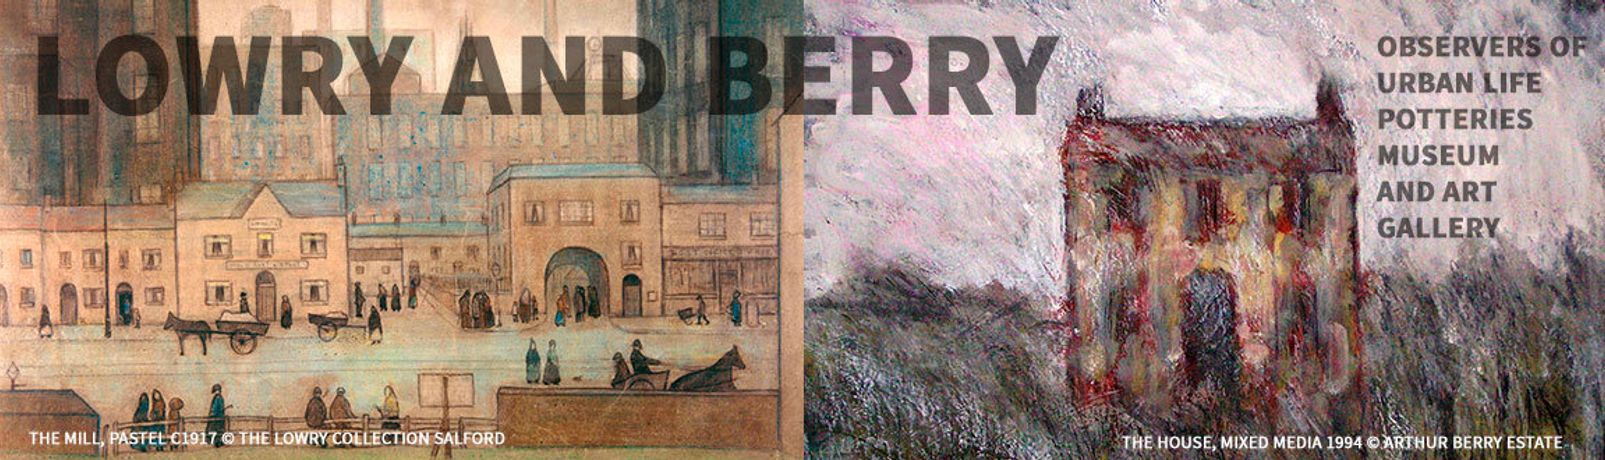 Lowry and Berry : Observers of Urban Life at The Potteries Museum and Art Gallery 25th